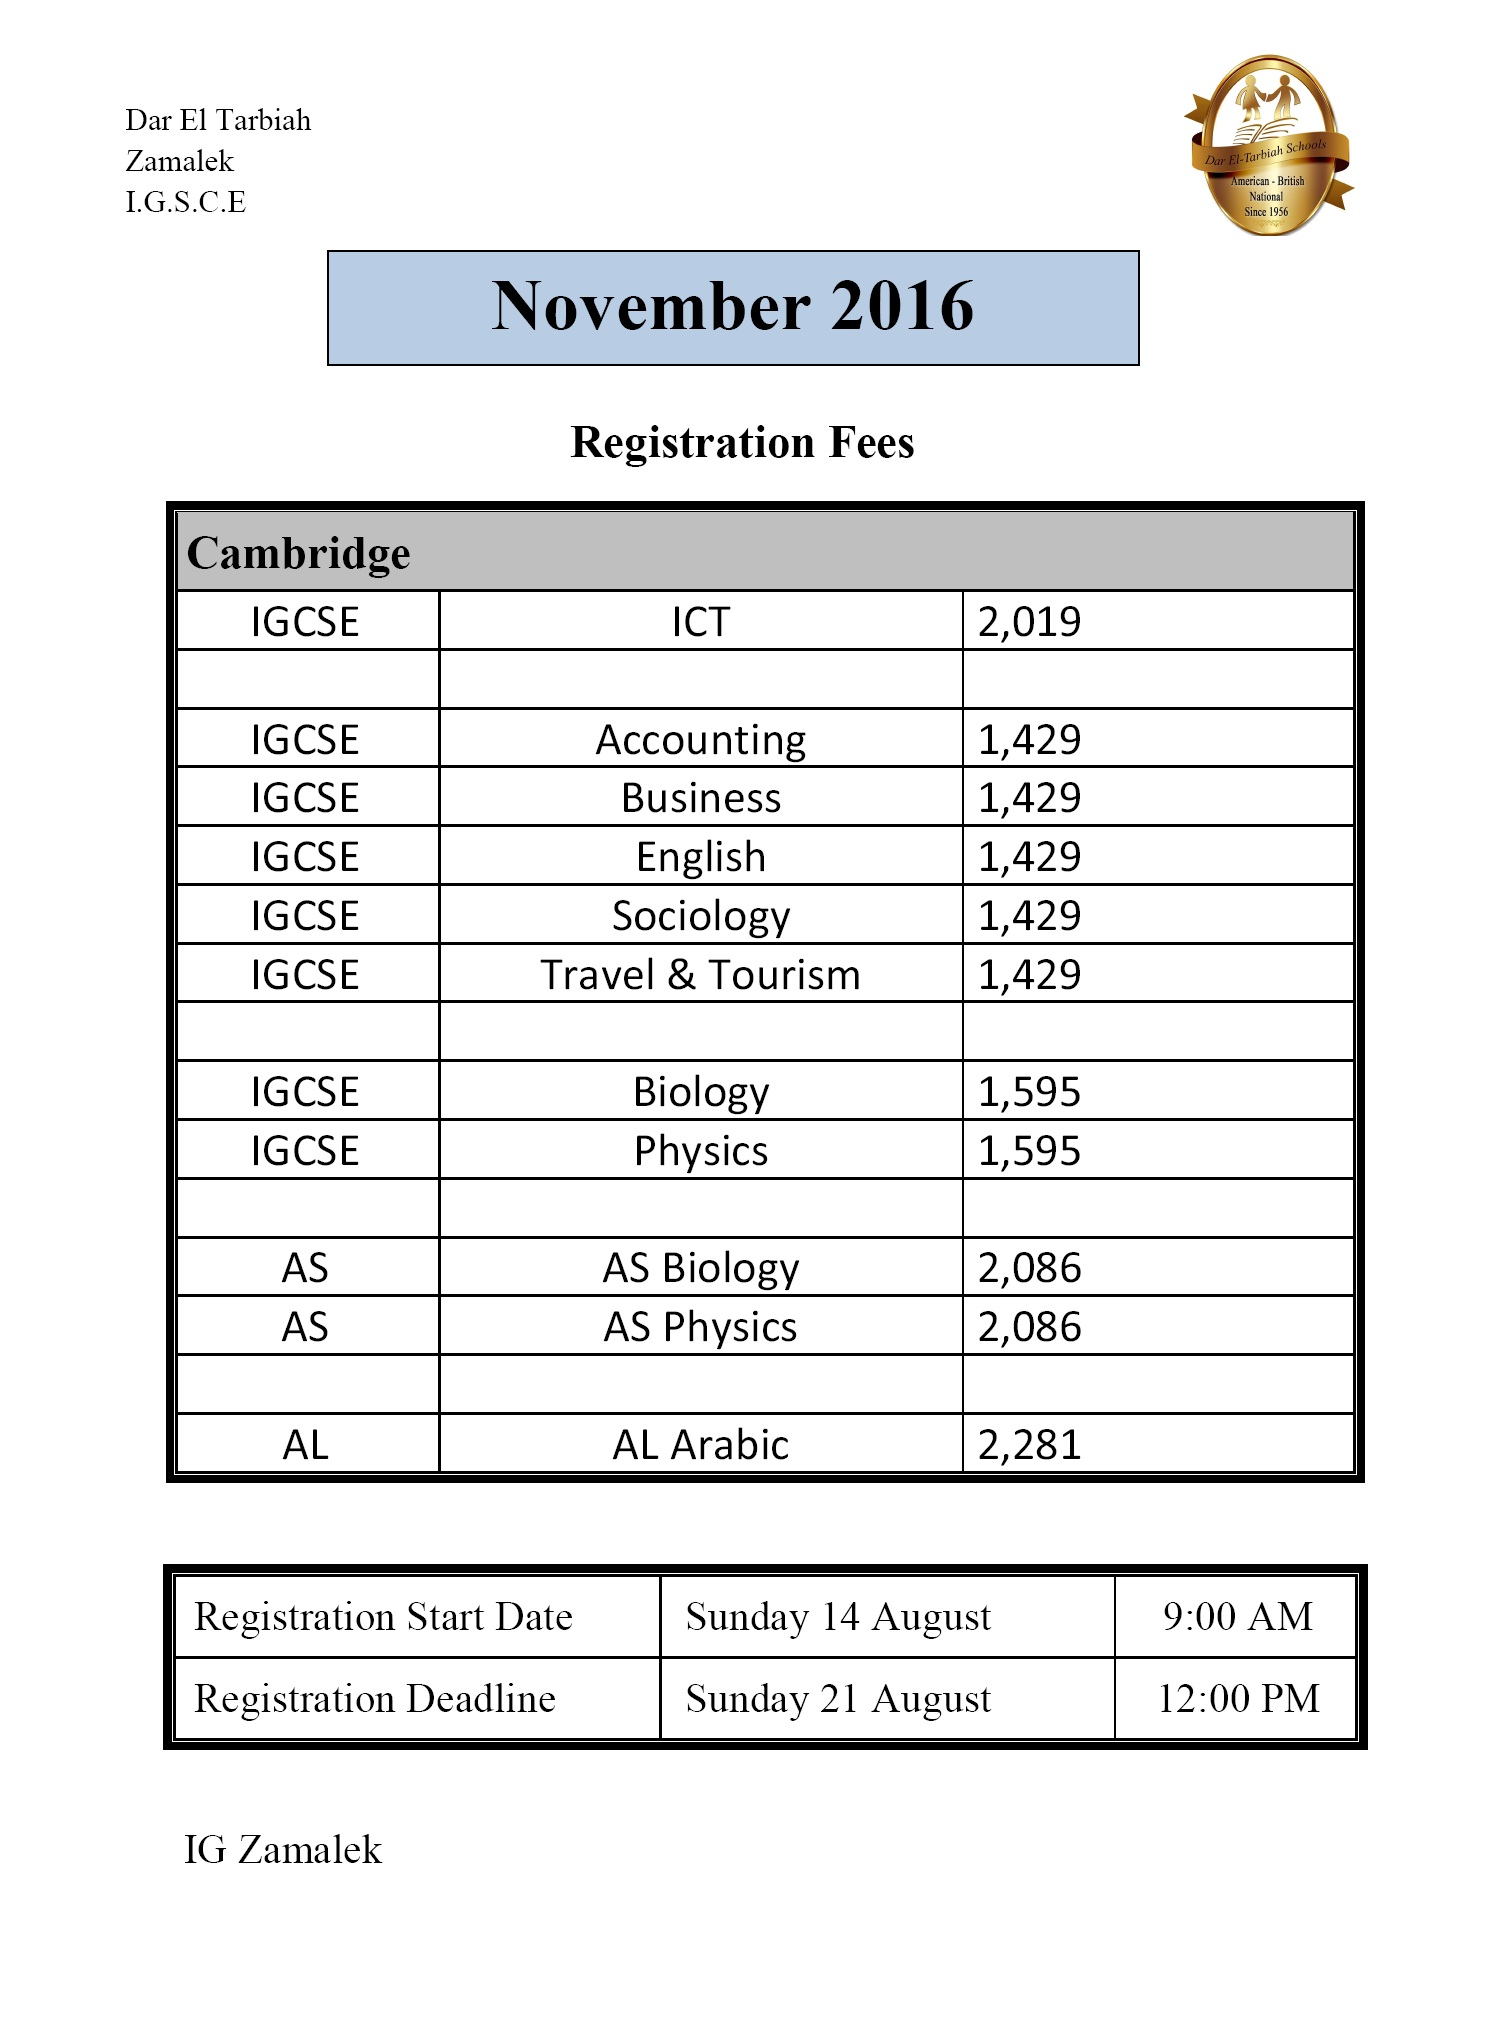 IG Zamalek - November 2016 Fees